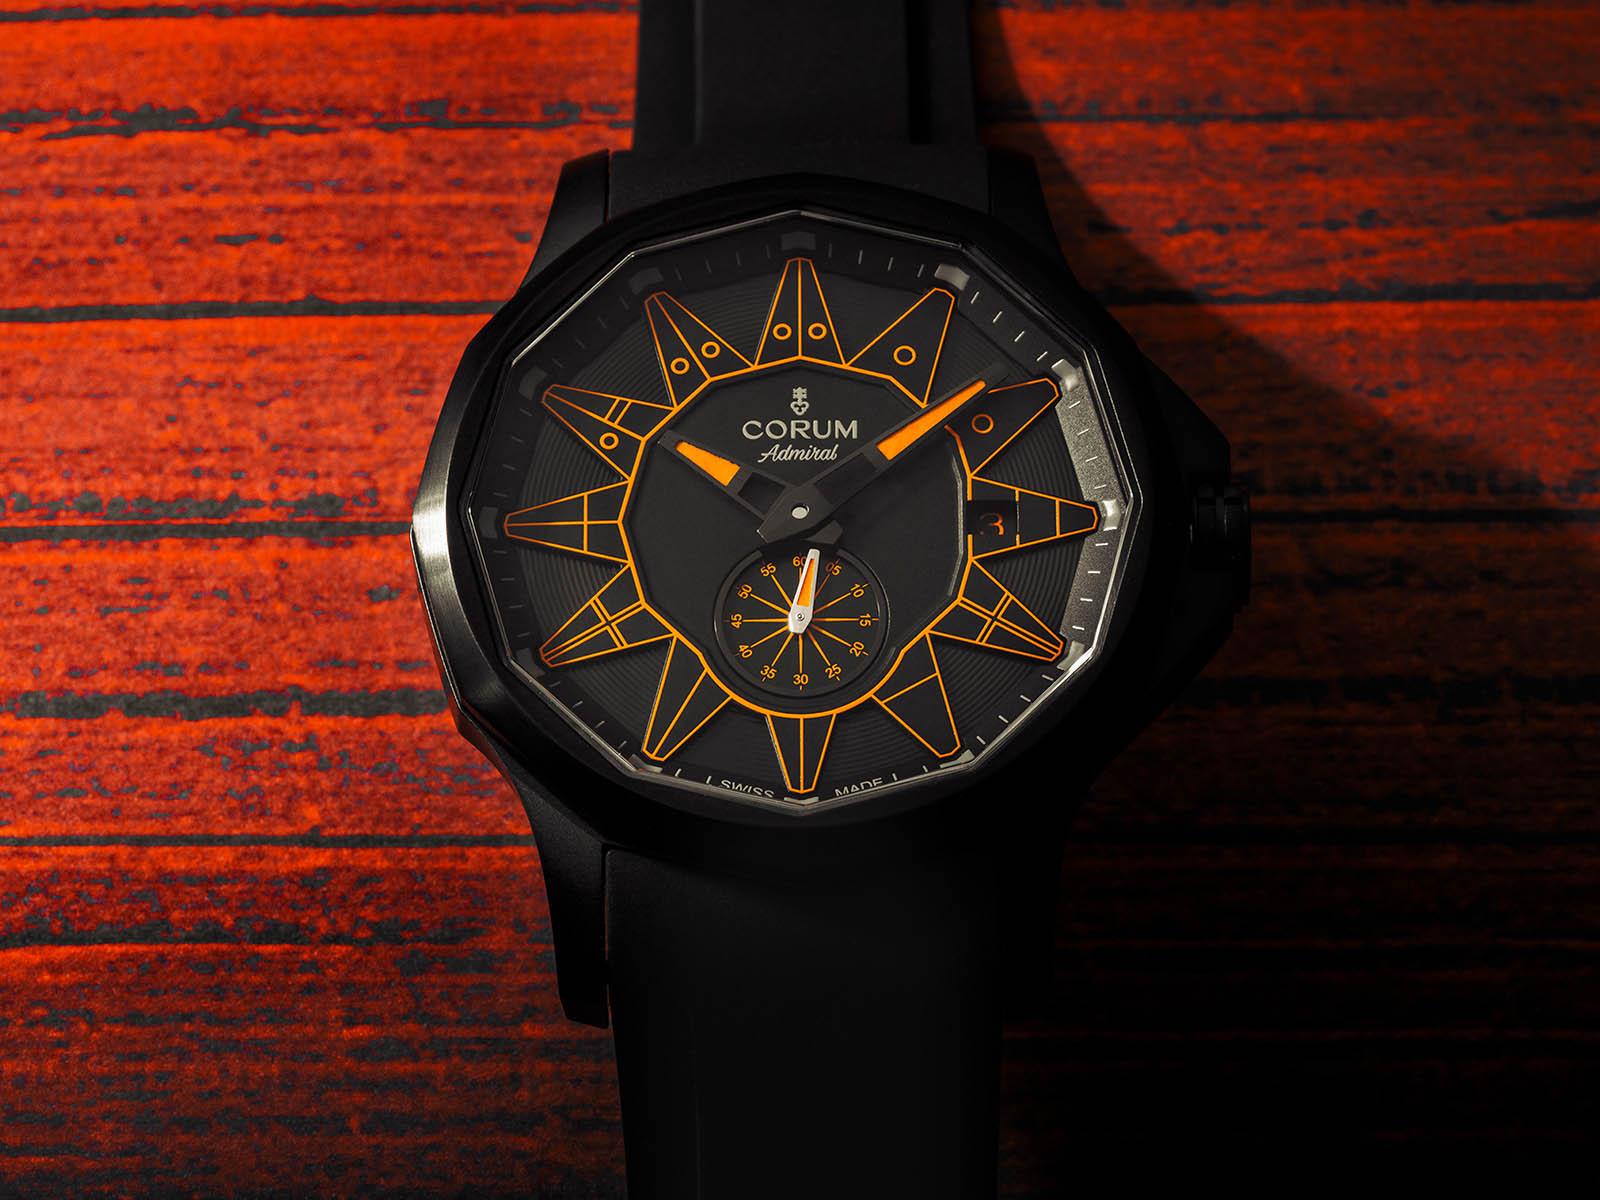 a395-04005-395-111-98-f371-b012-corum-admiral-legend-42-1.jpg